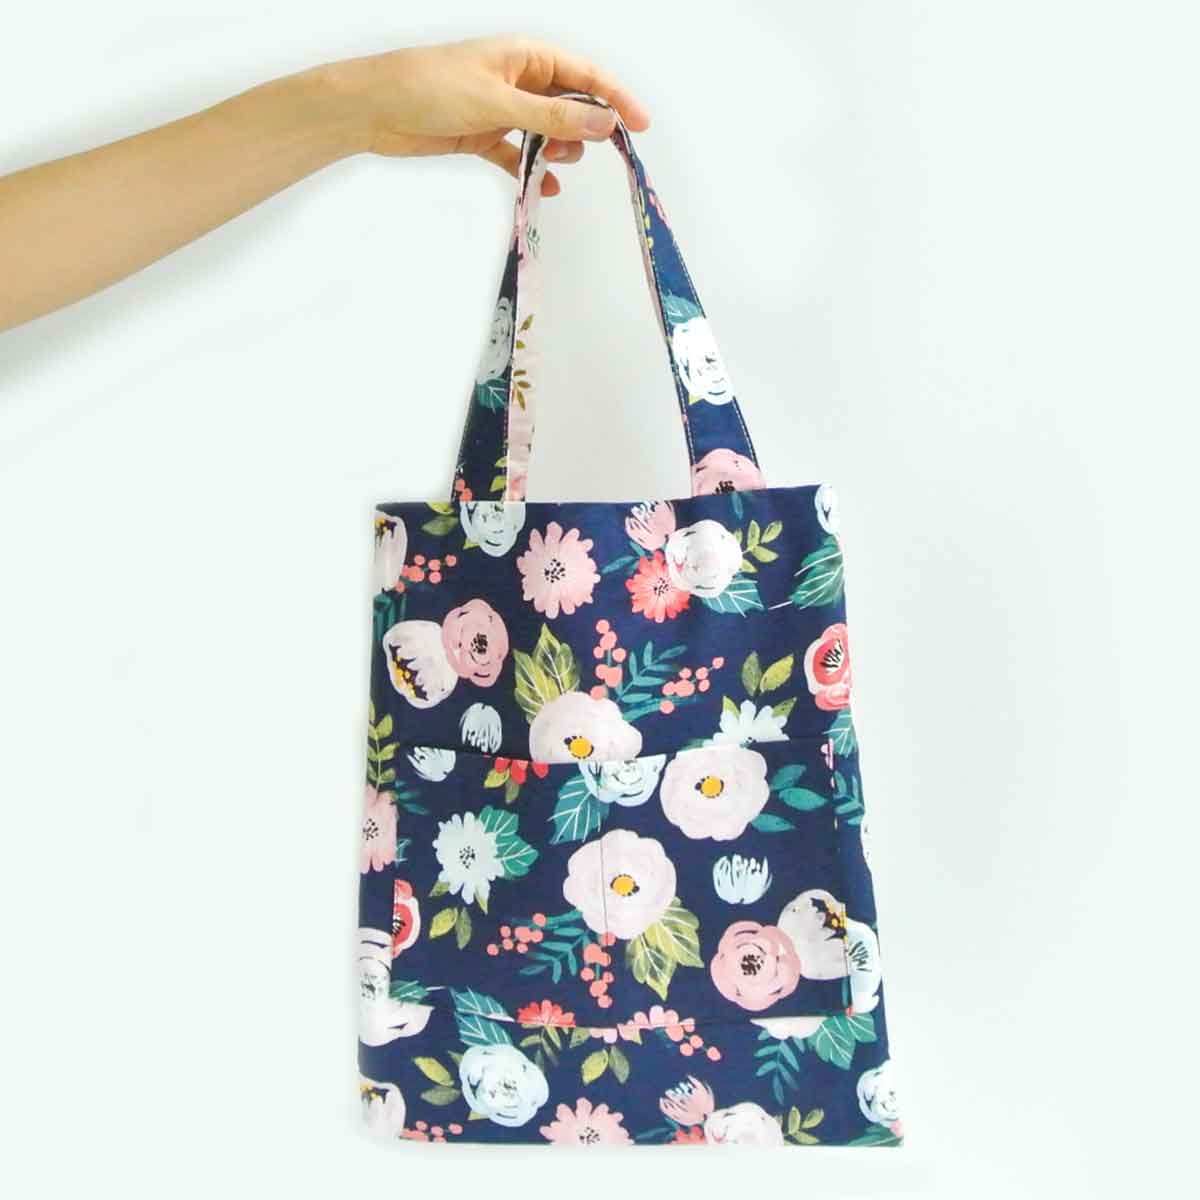 Reversible Tote Bag With Pockets